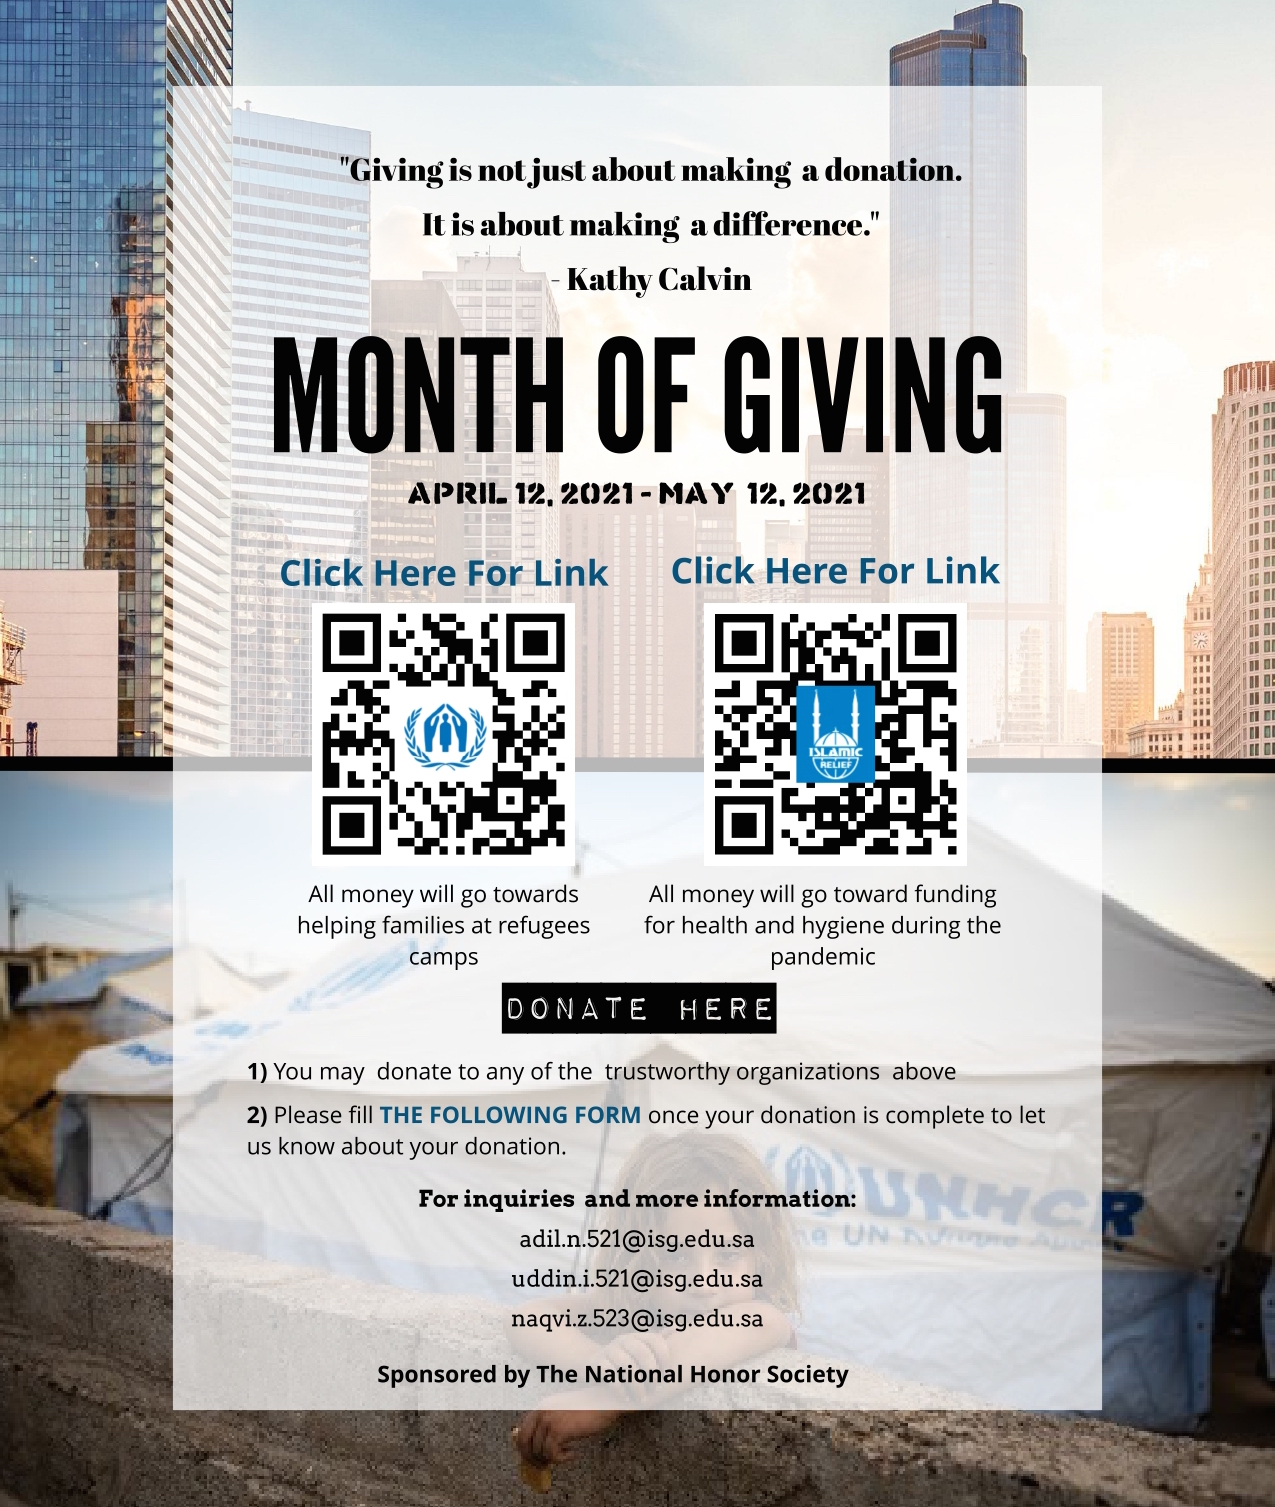 NHS Month of Giving